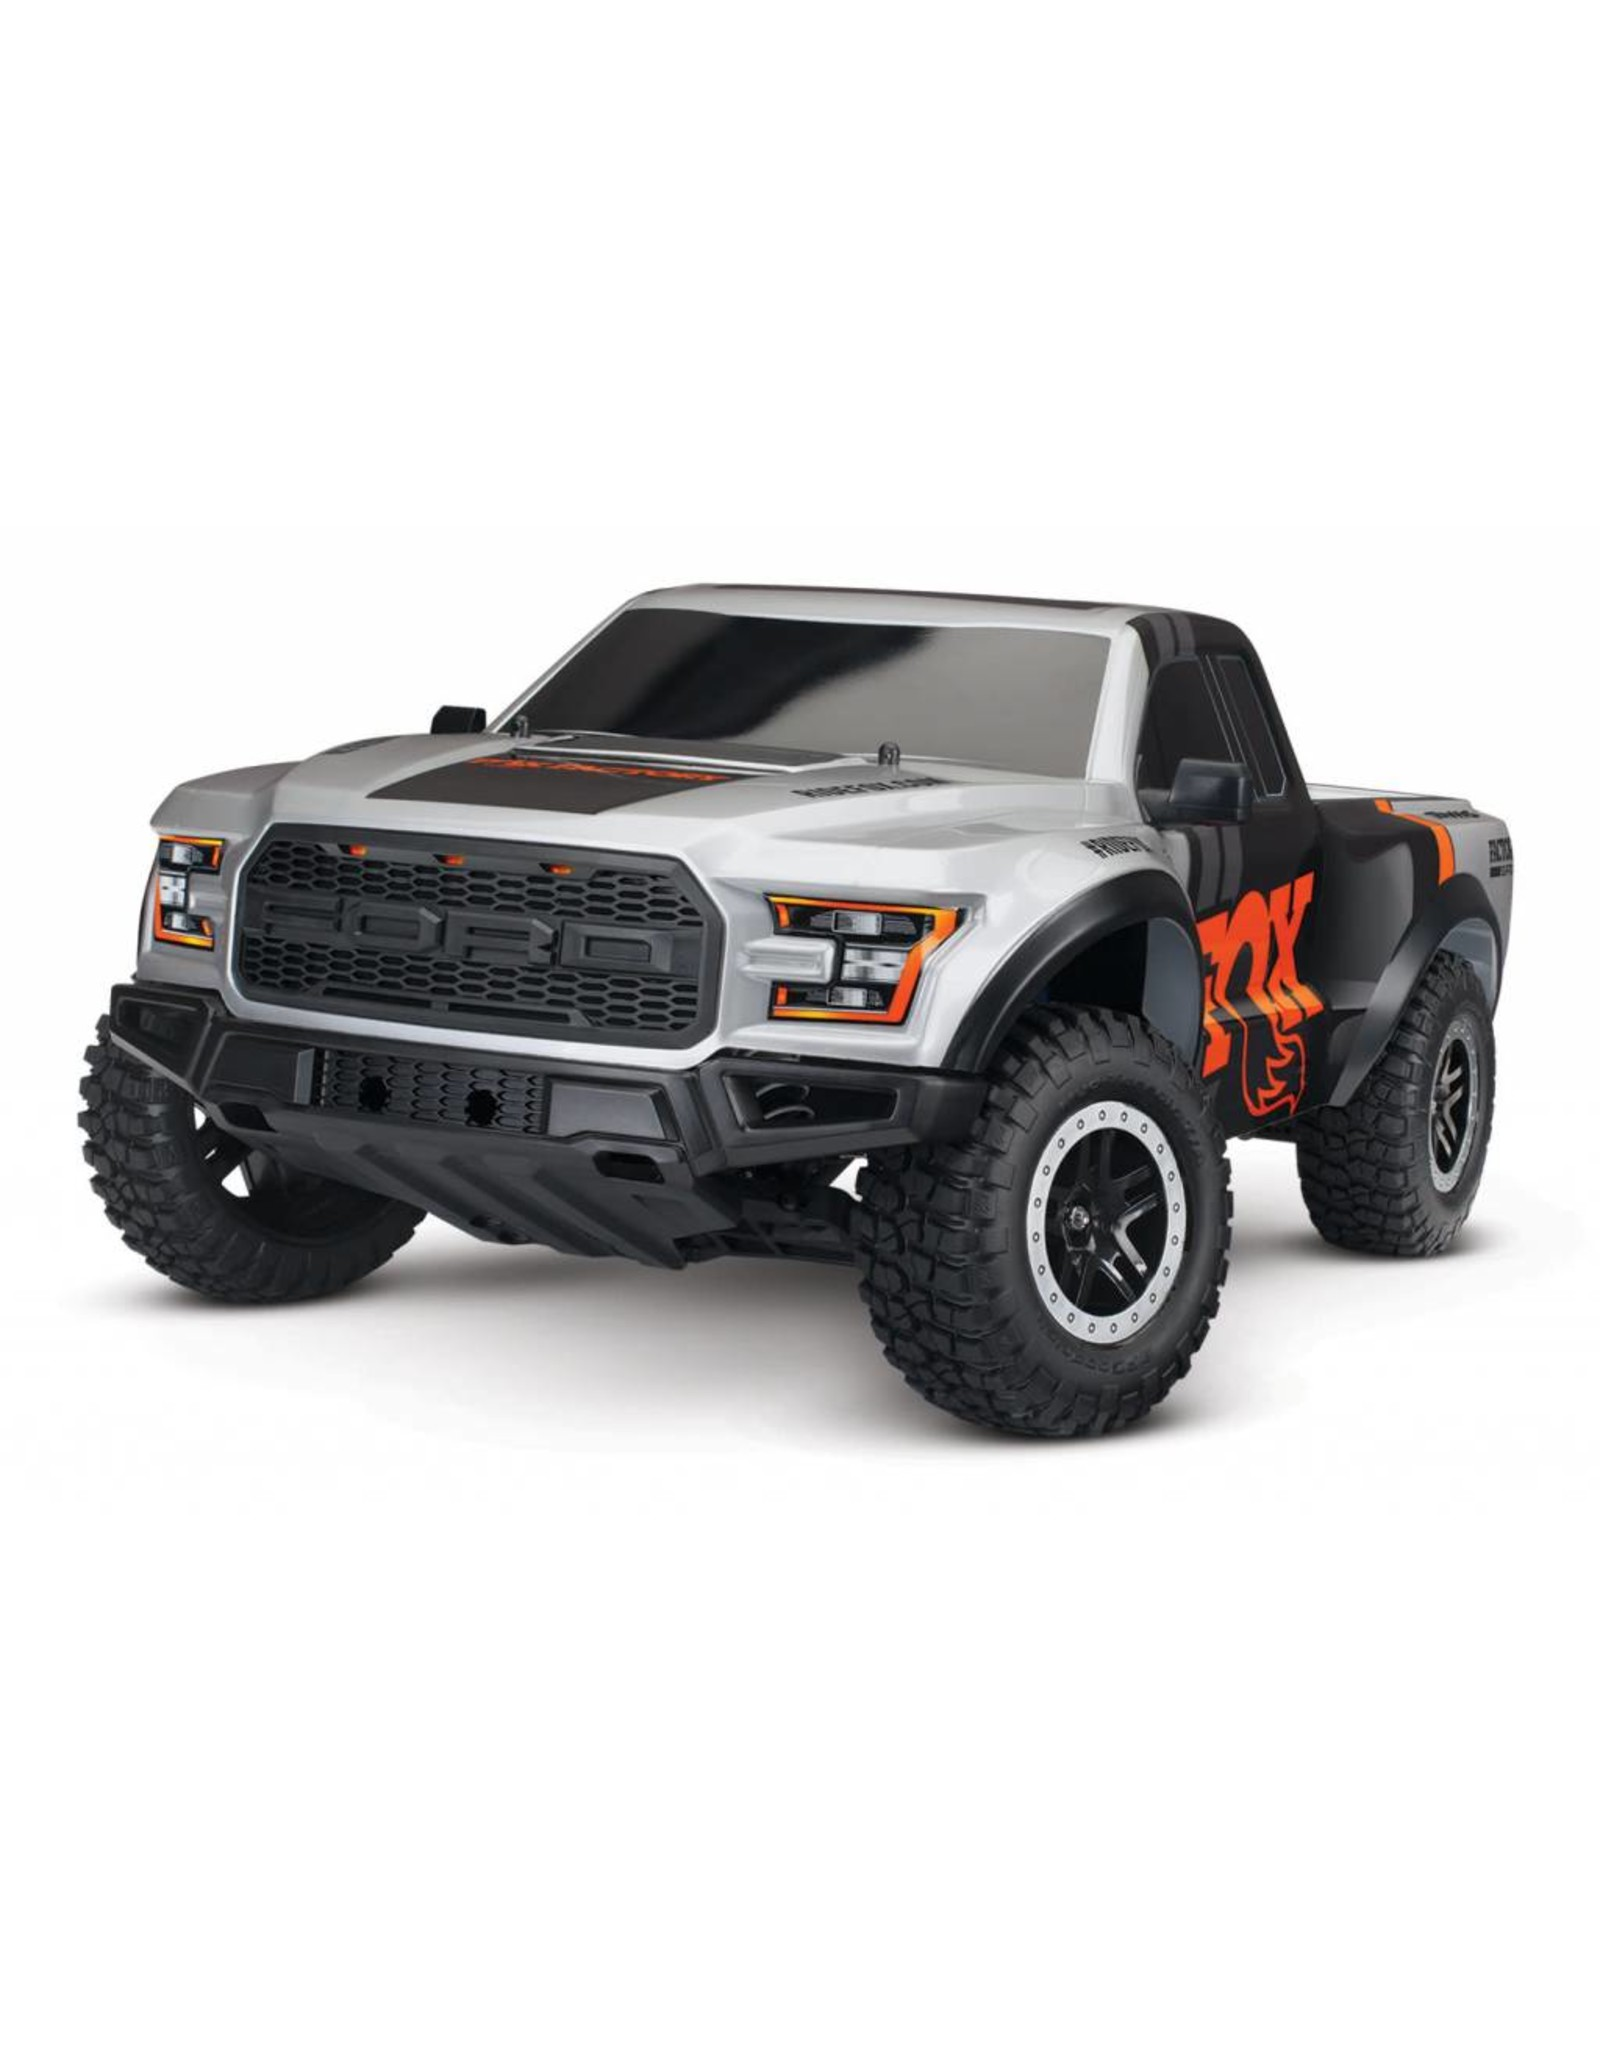 Traxxas 1/10 Ford Raptor 2WD Brushed (FOX); Includes Battery with Charger